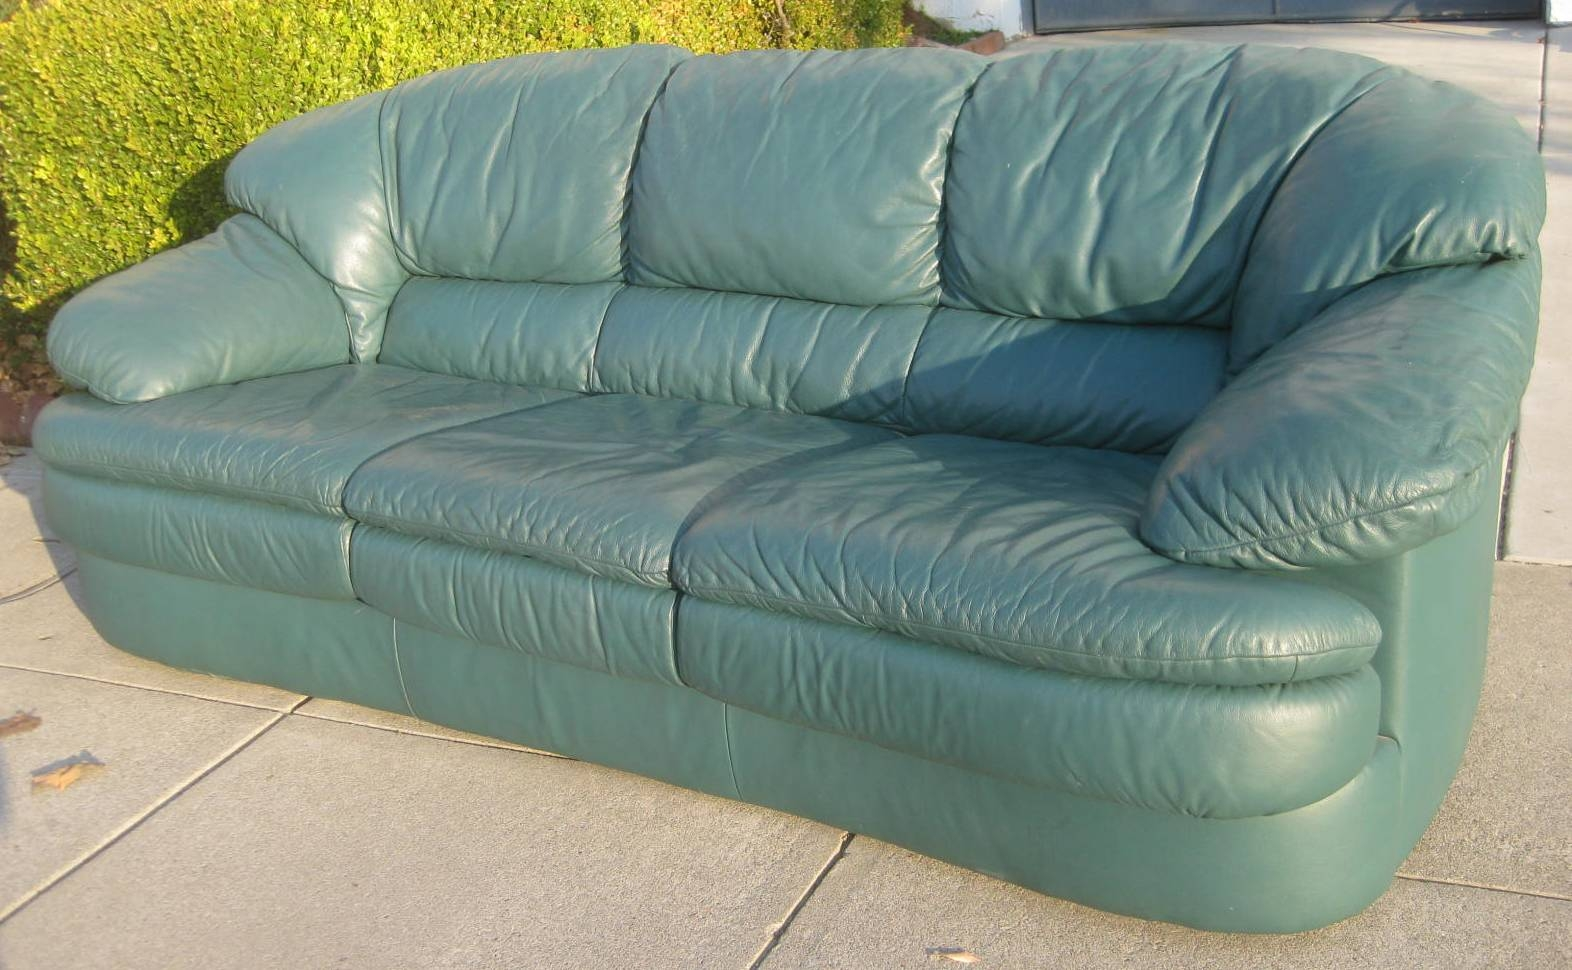 Uhuru Furniture & Collectibles: Sold - Green Leather Sofa - $80 within Green Leather Sectional Sofas (Image 14 of 15)